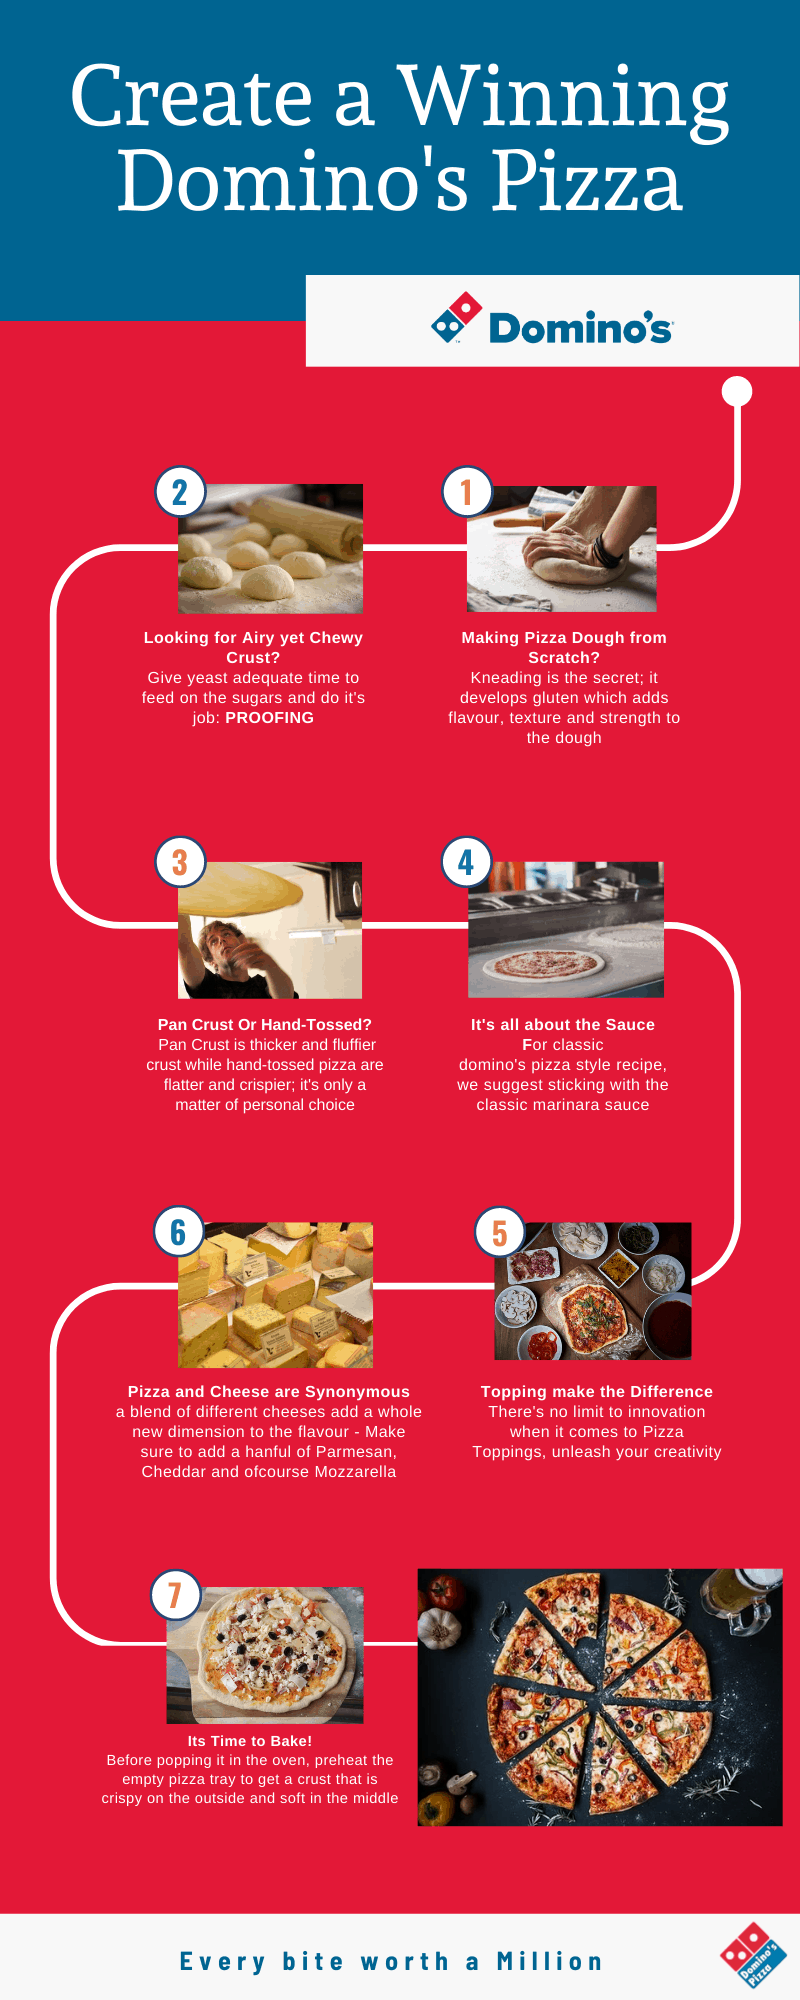 step by step infographic instructions for making dominos pizza at home